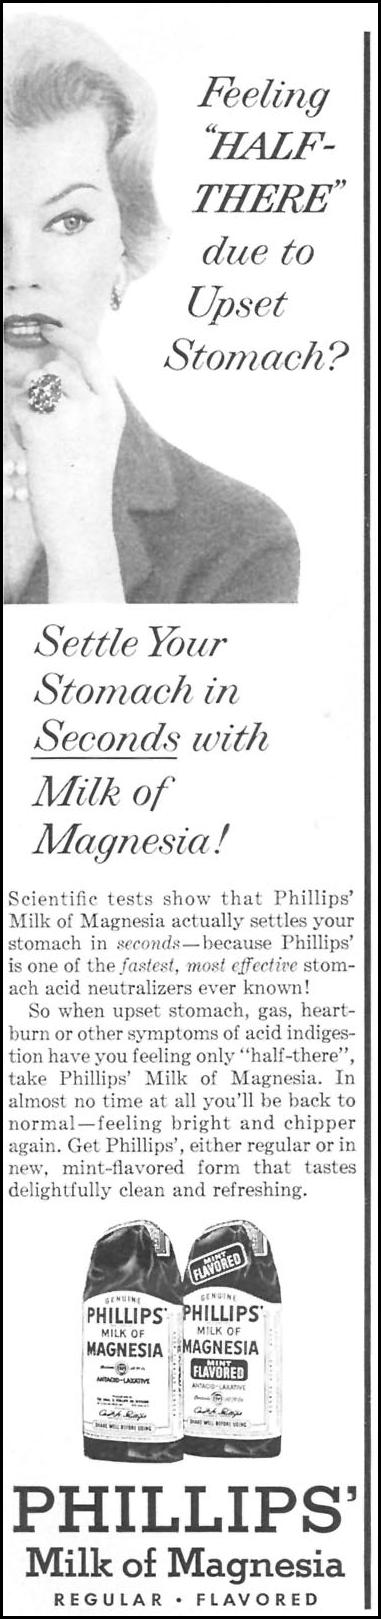 PHILLIPS' MILK OF MAGNESIA WOMAN'S DAY 06/01/1958 p. 12